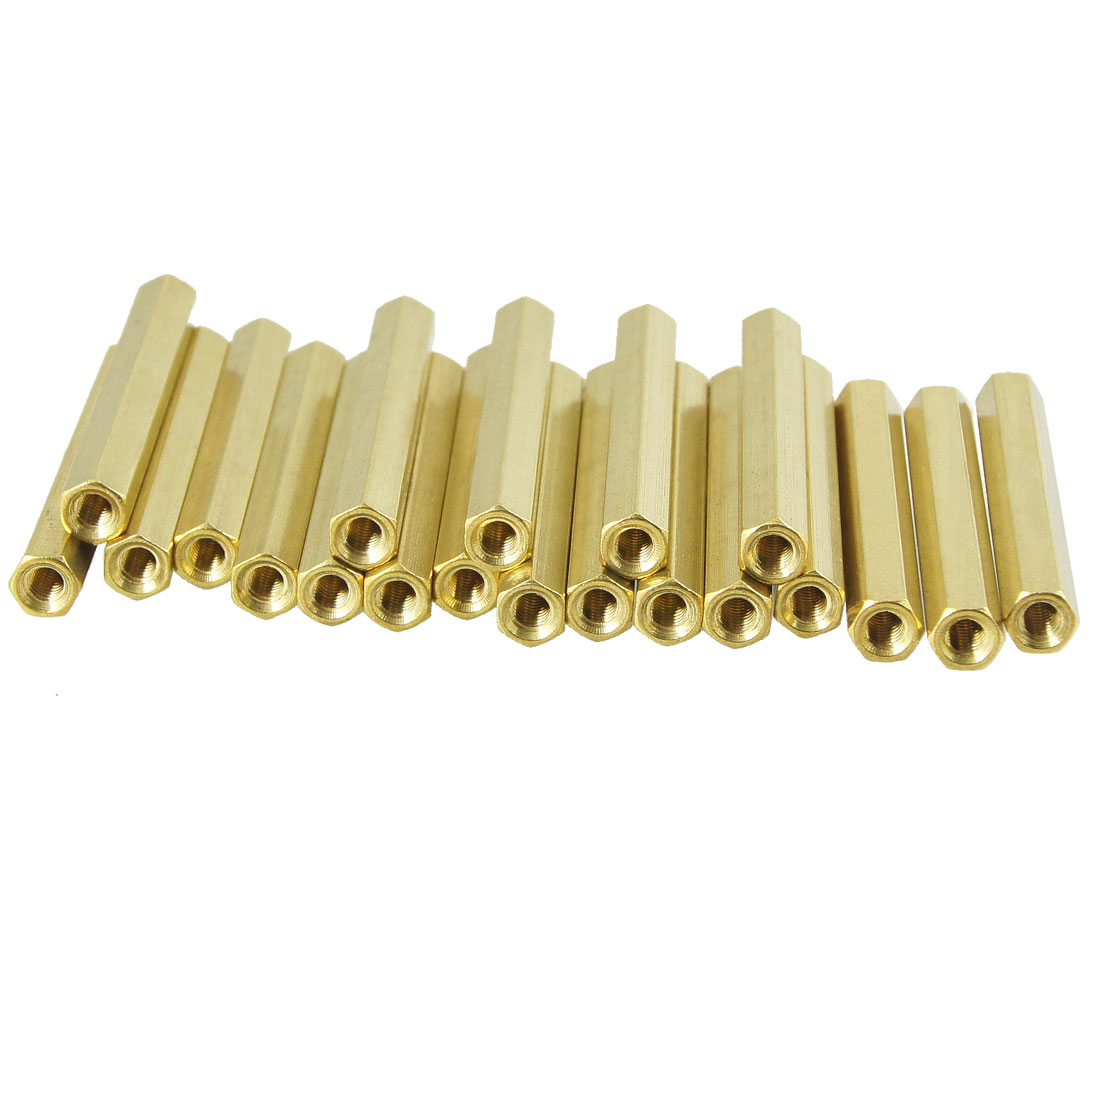 20 Pcs M3X40mm Gold Tone Female Thread Standoff Hexagonal Spacer